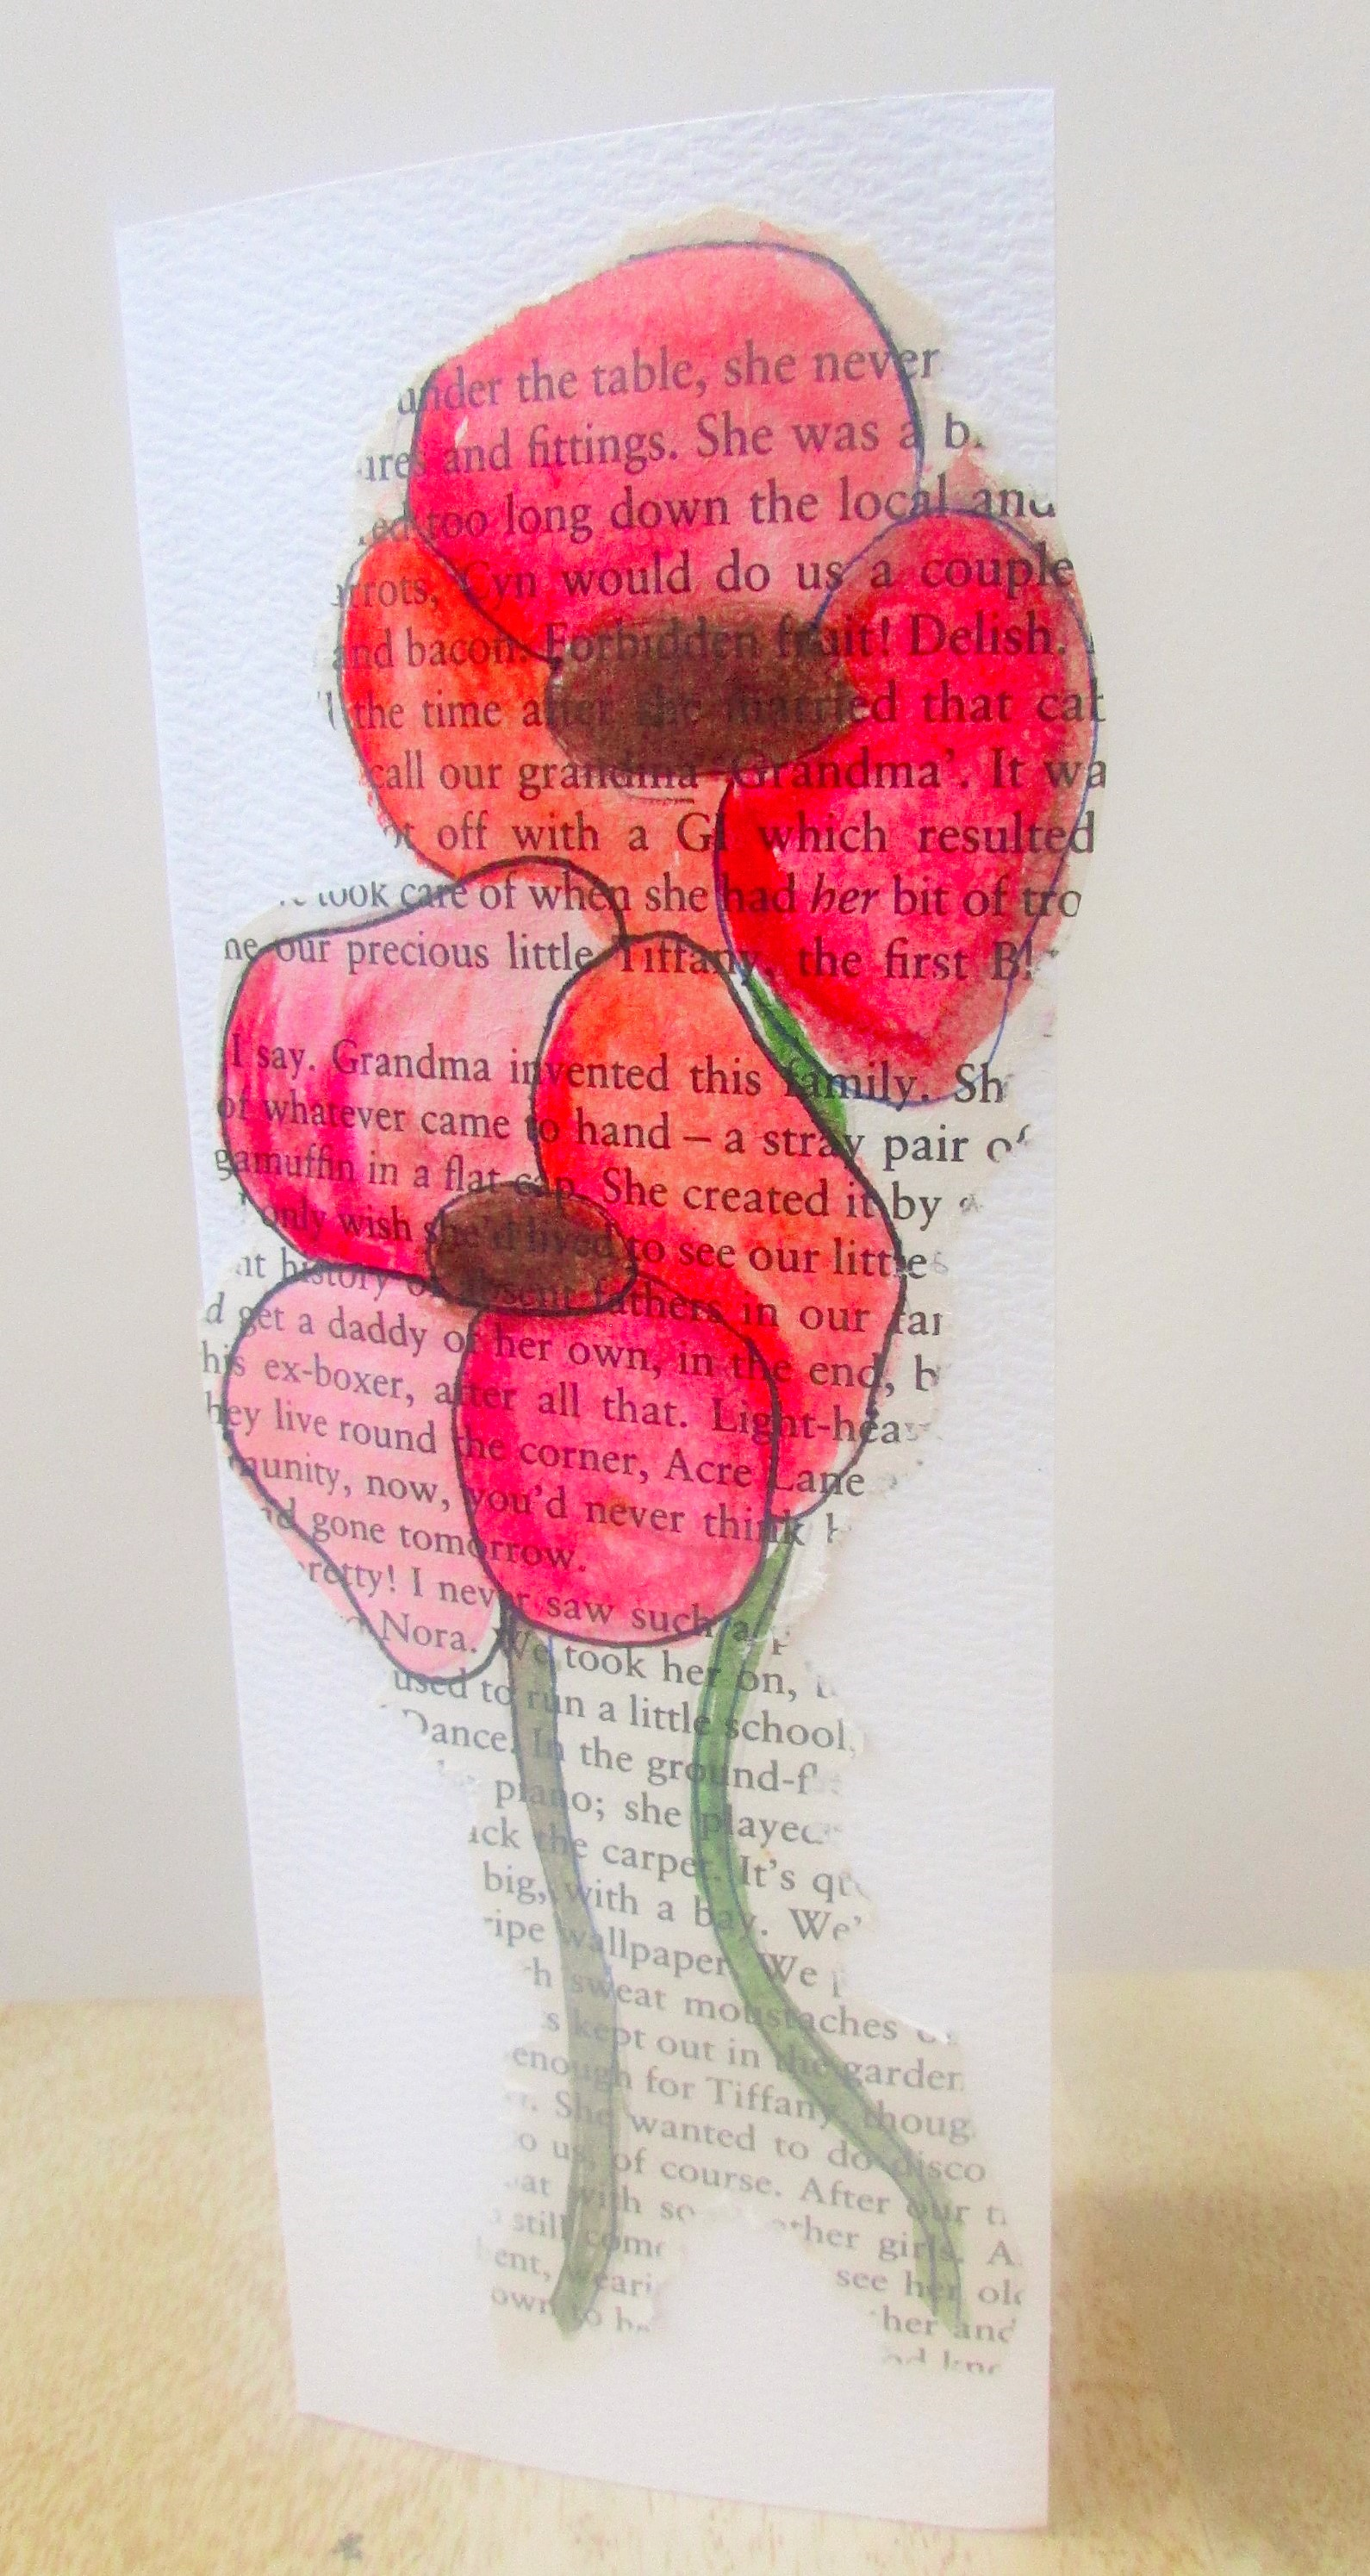 Remembrance day archives craft ideas for kids - Remembrance day craft ideas ...